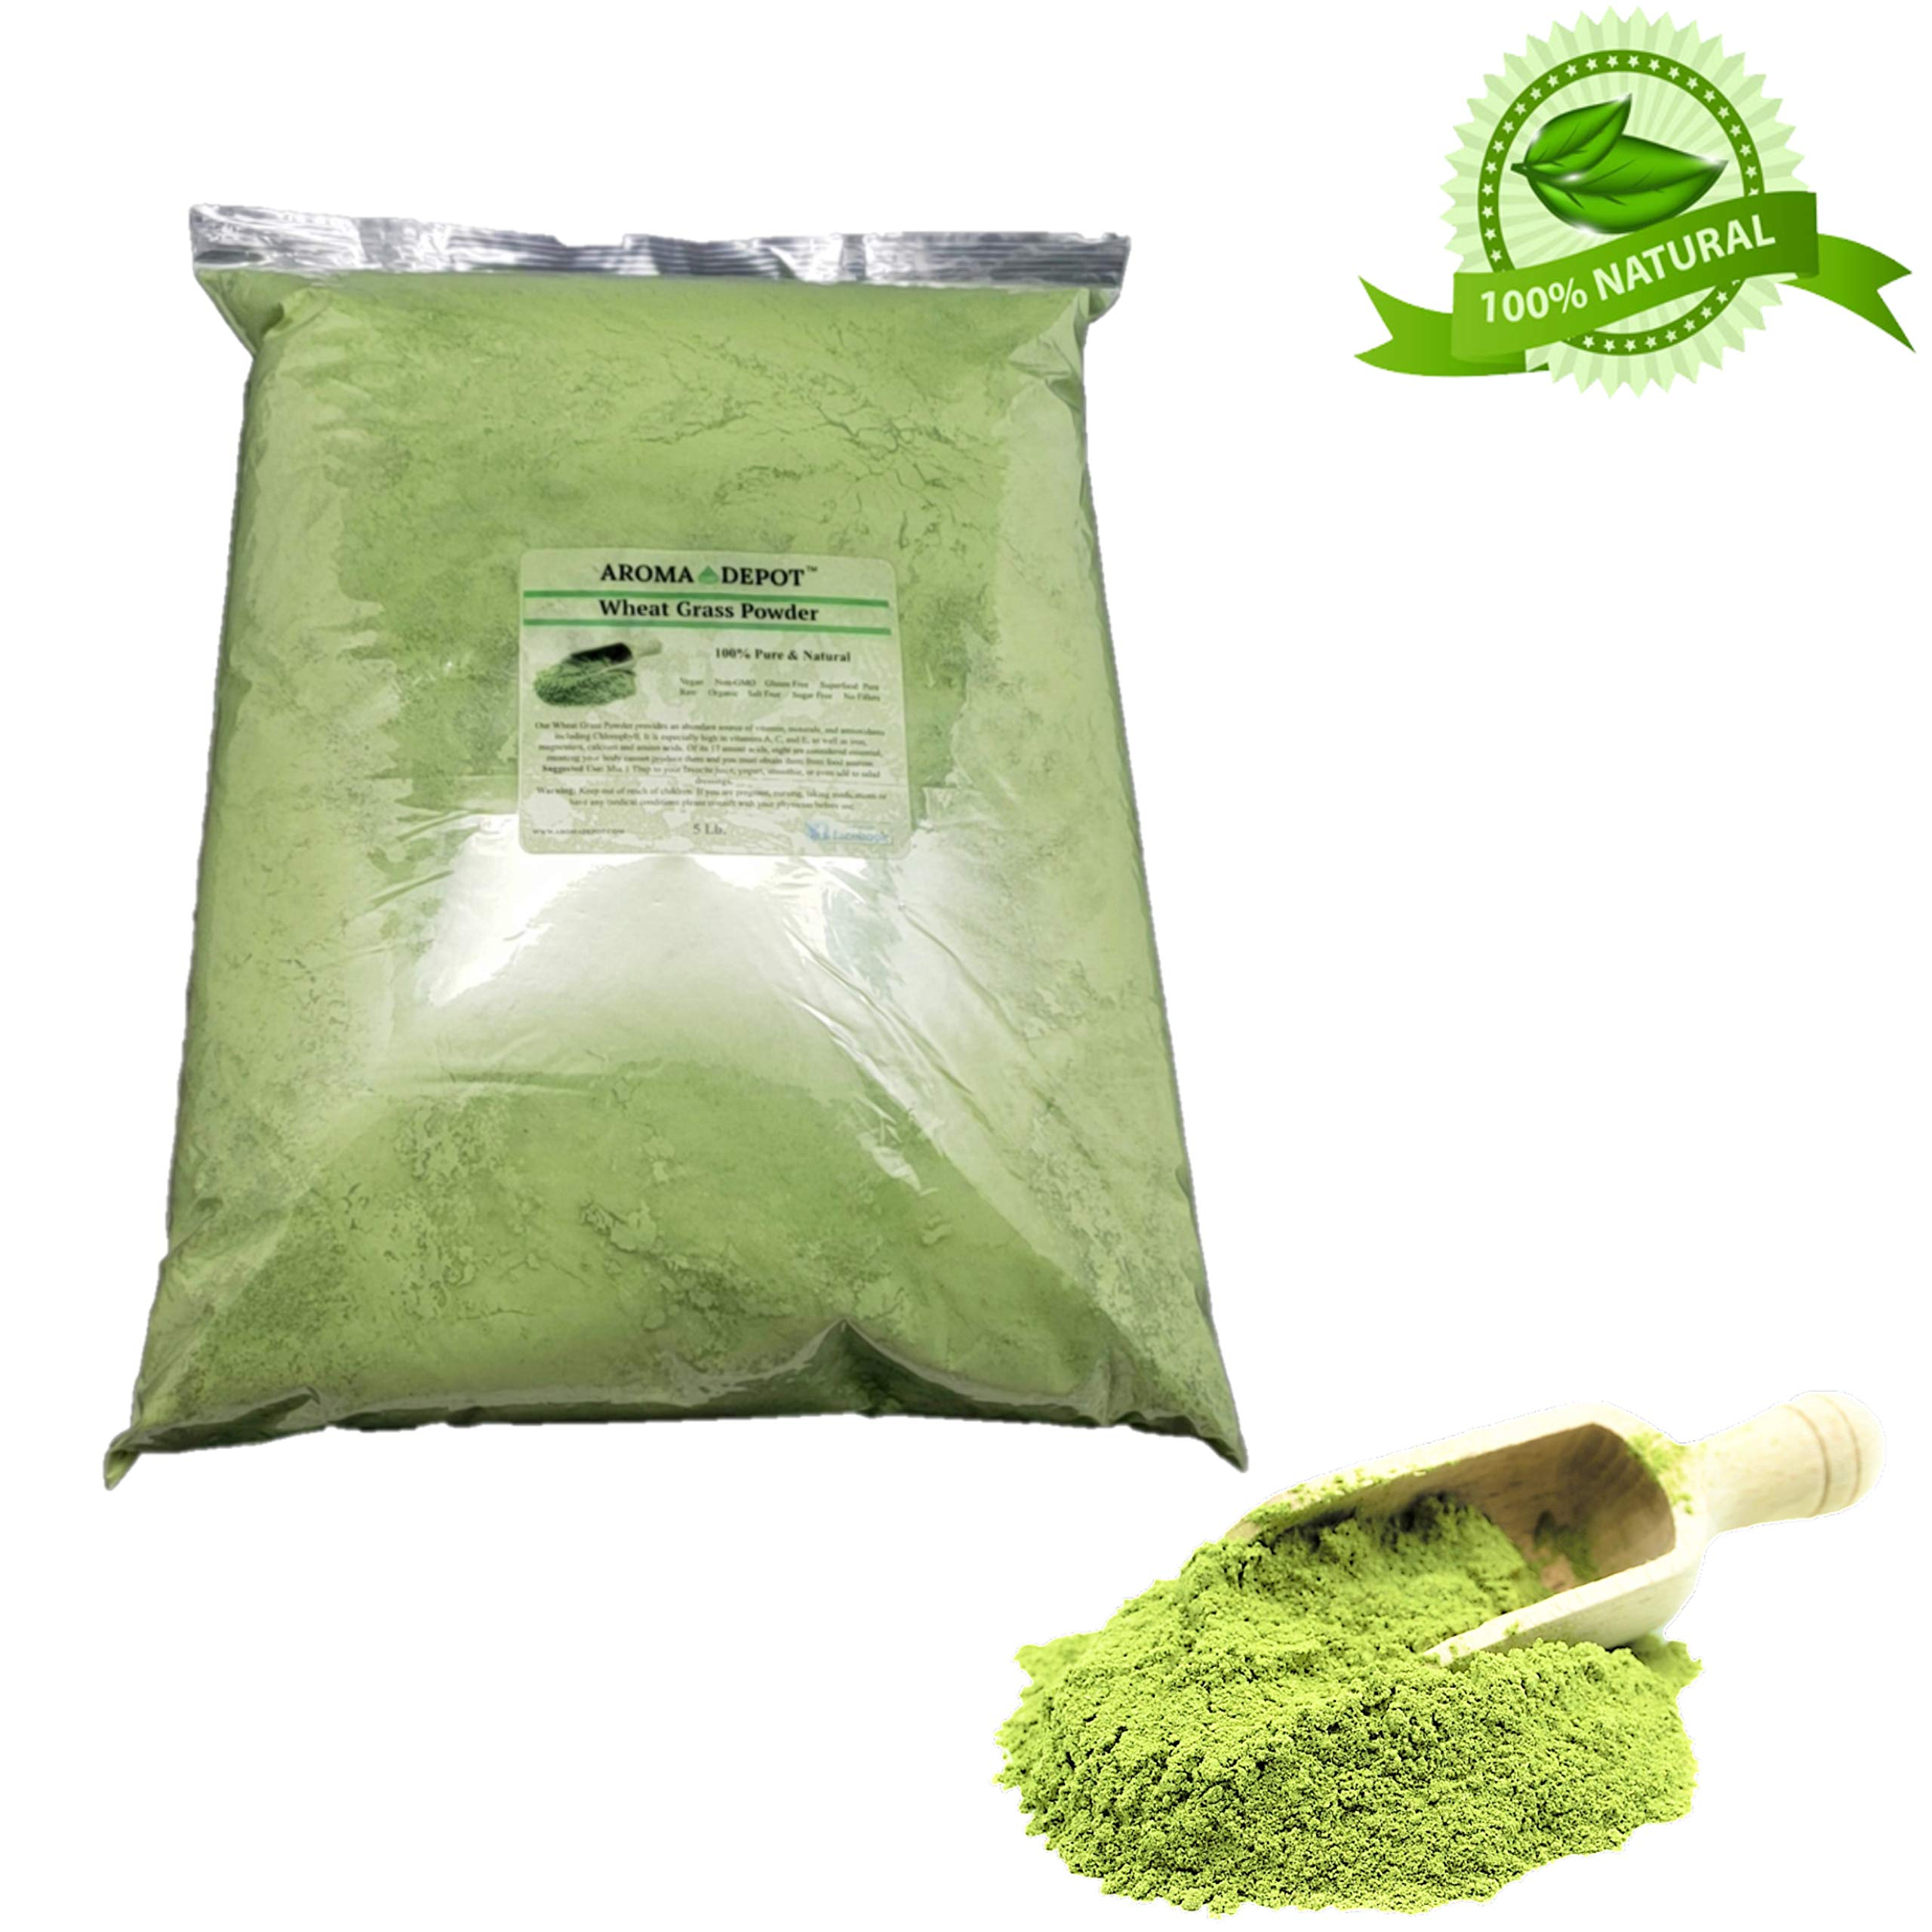 Aroma Depot 5lb Organic Wheatgrass Juice Powder I All Natural Raw Concentrate Wheatgrass, Gluten Free, Whole Food Supplement, Non_GMO, No Fillers, Rich in Vitamin B1 & B2, Increase Blood Cell Oxygen